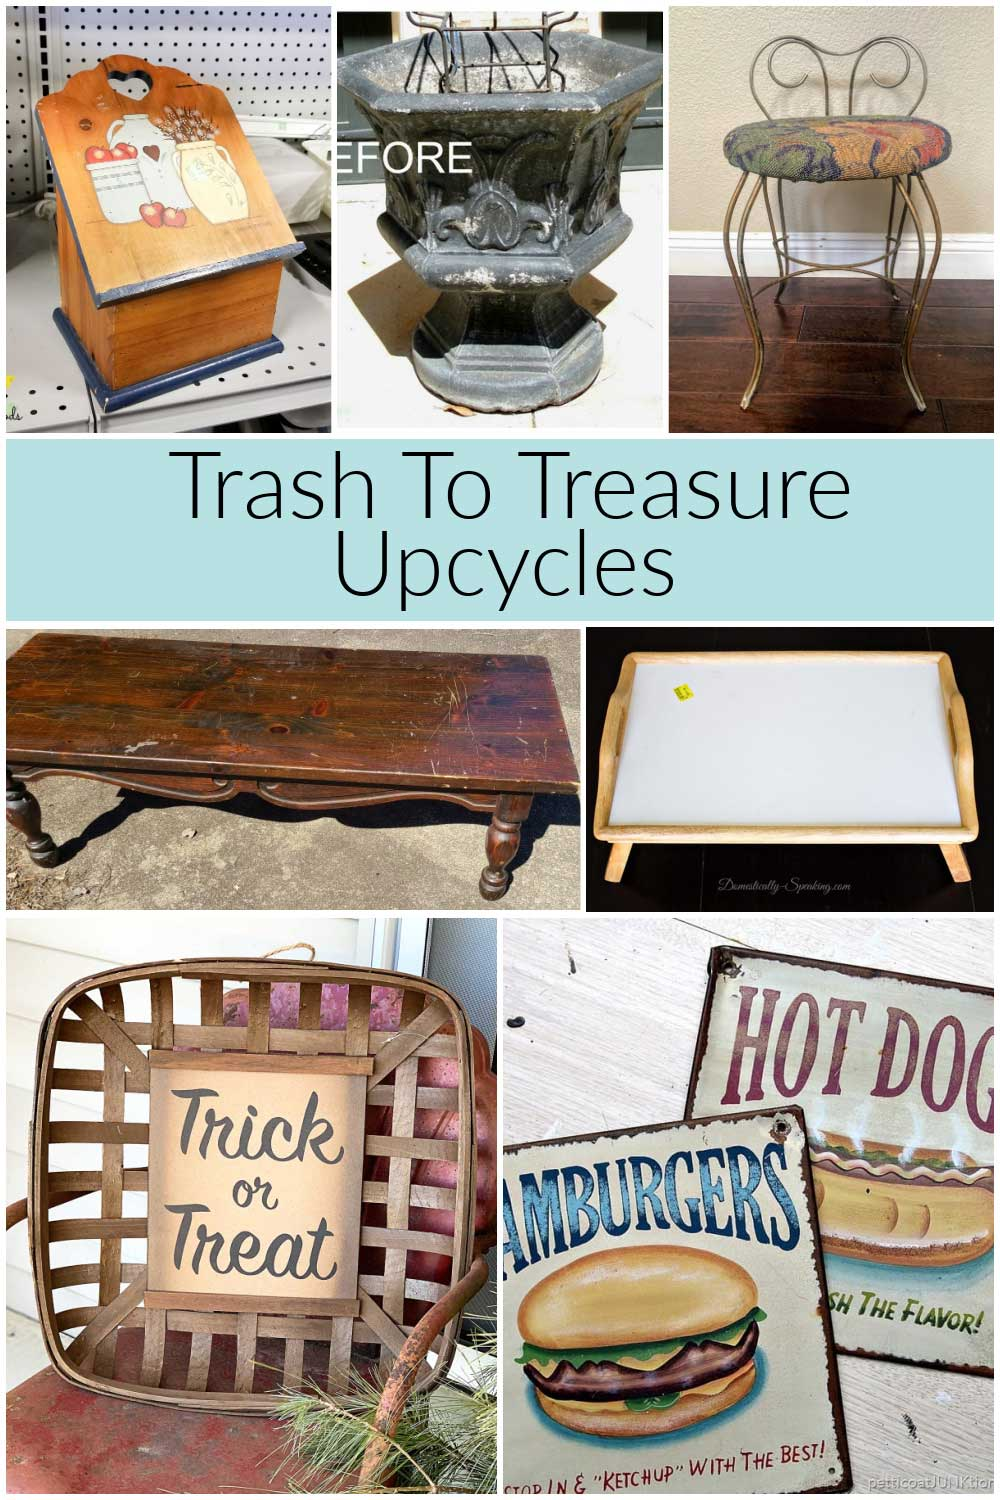 photo showing before images of trash to treasure upcycles